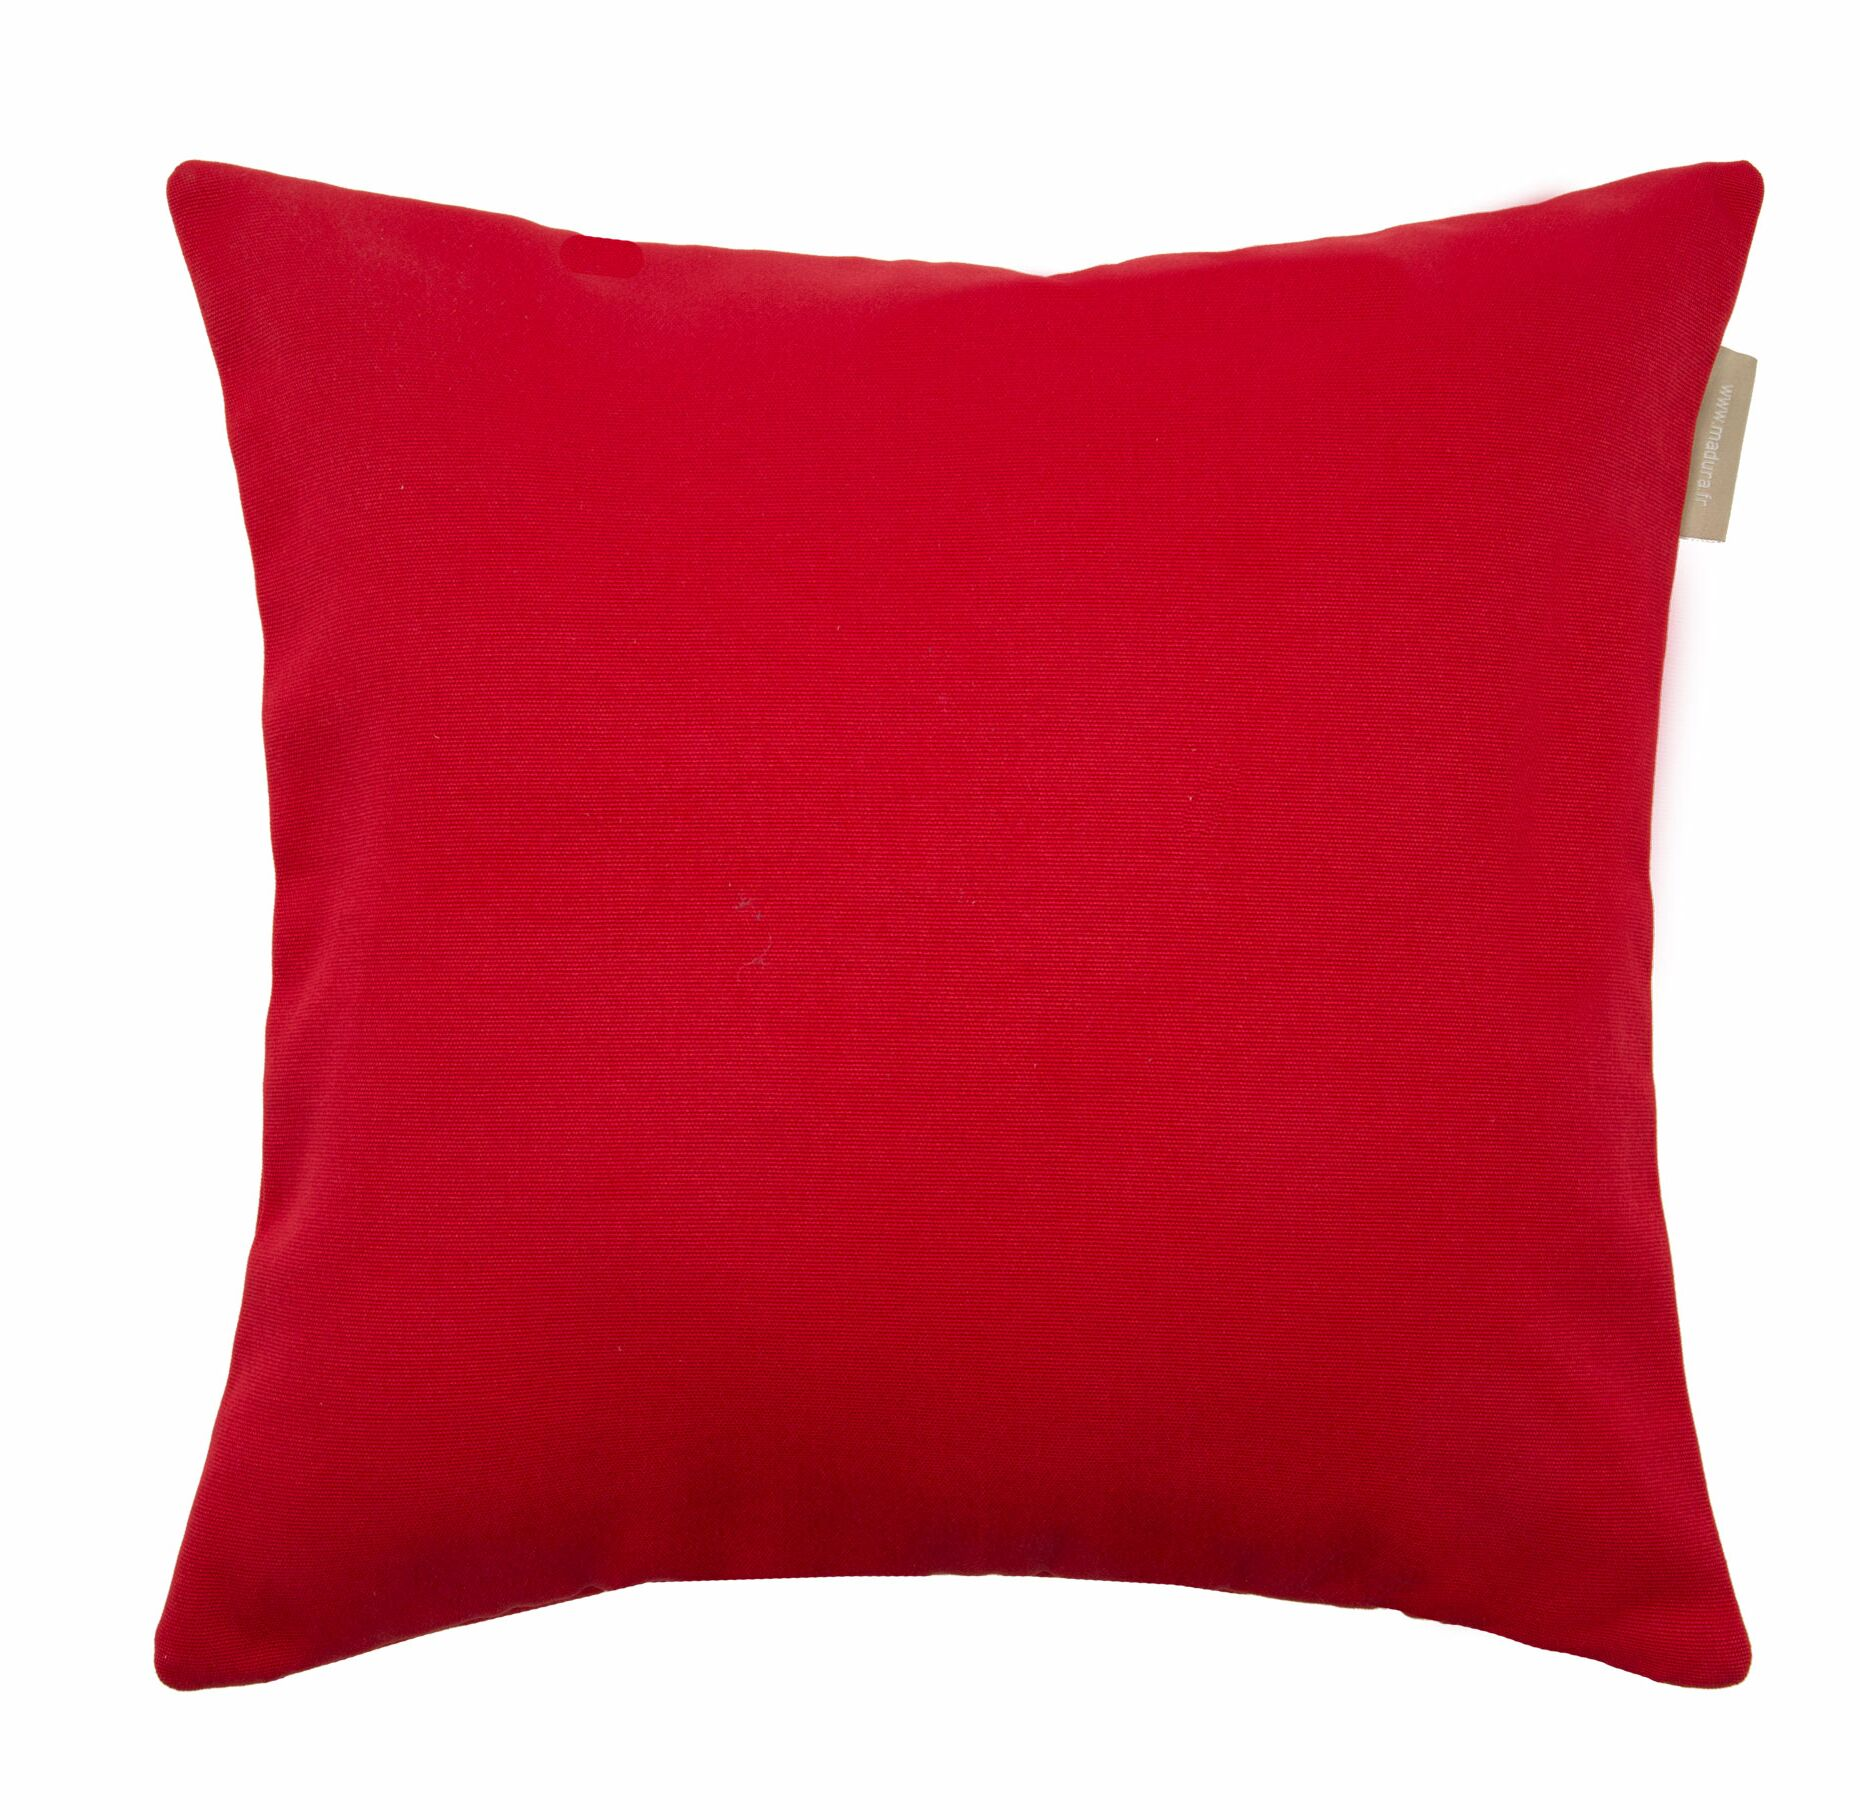 Indoor/Outdoor Pillow Cover Size: 23.5